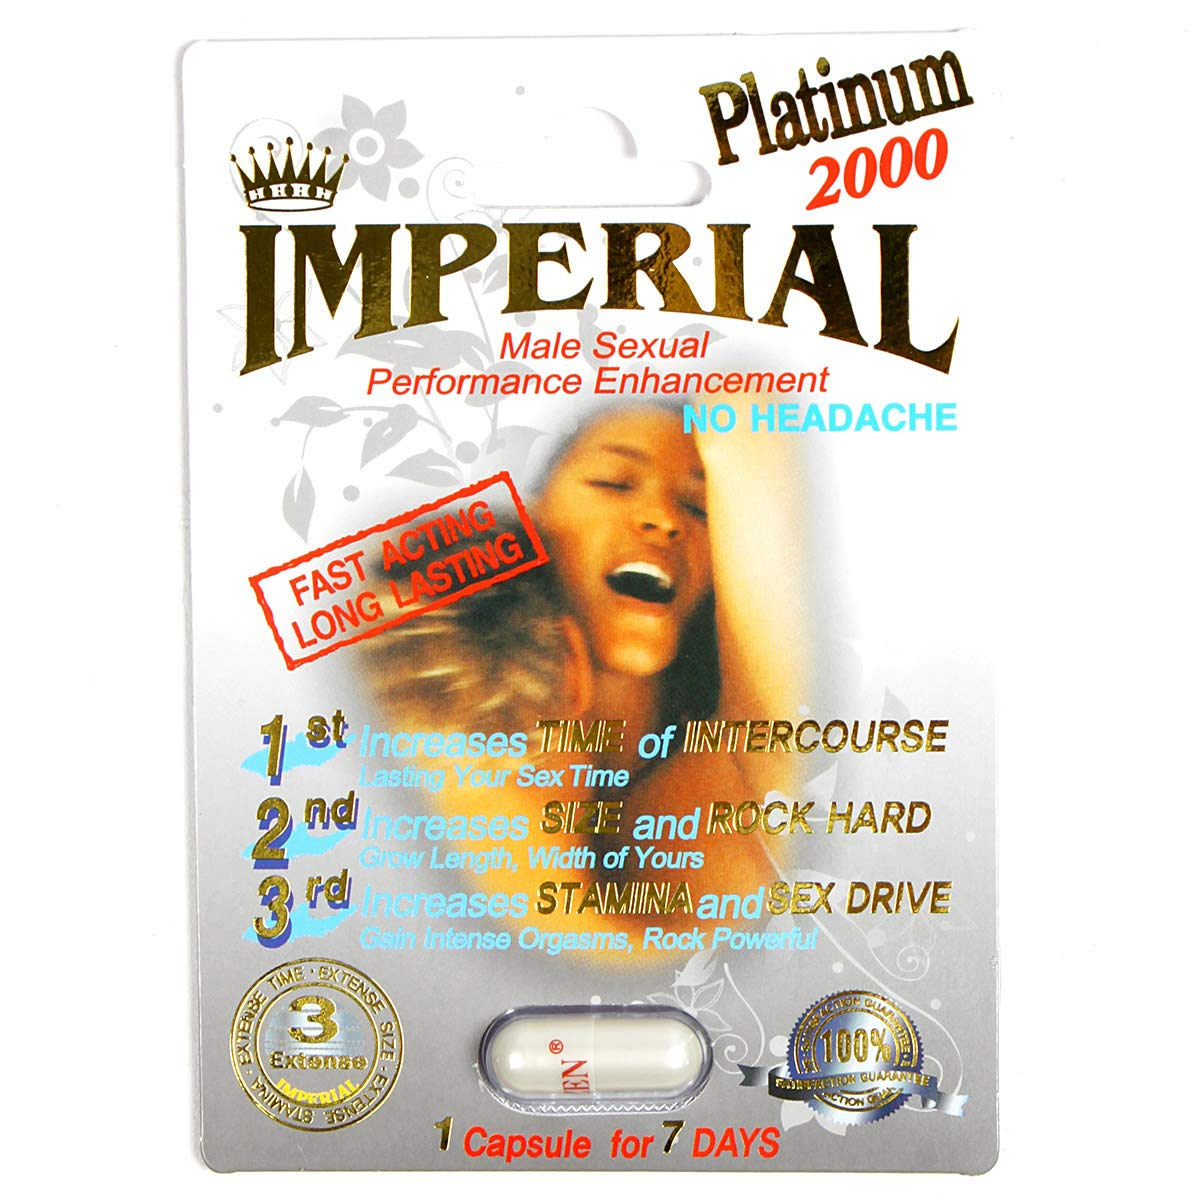 Imperial Platinum, All Natural Enhancement Pills for Men (3 Pill) by SERENITA